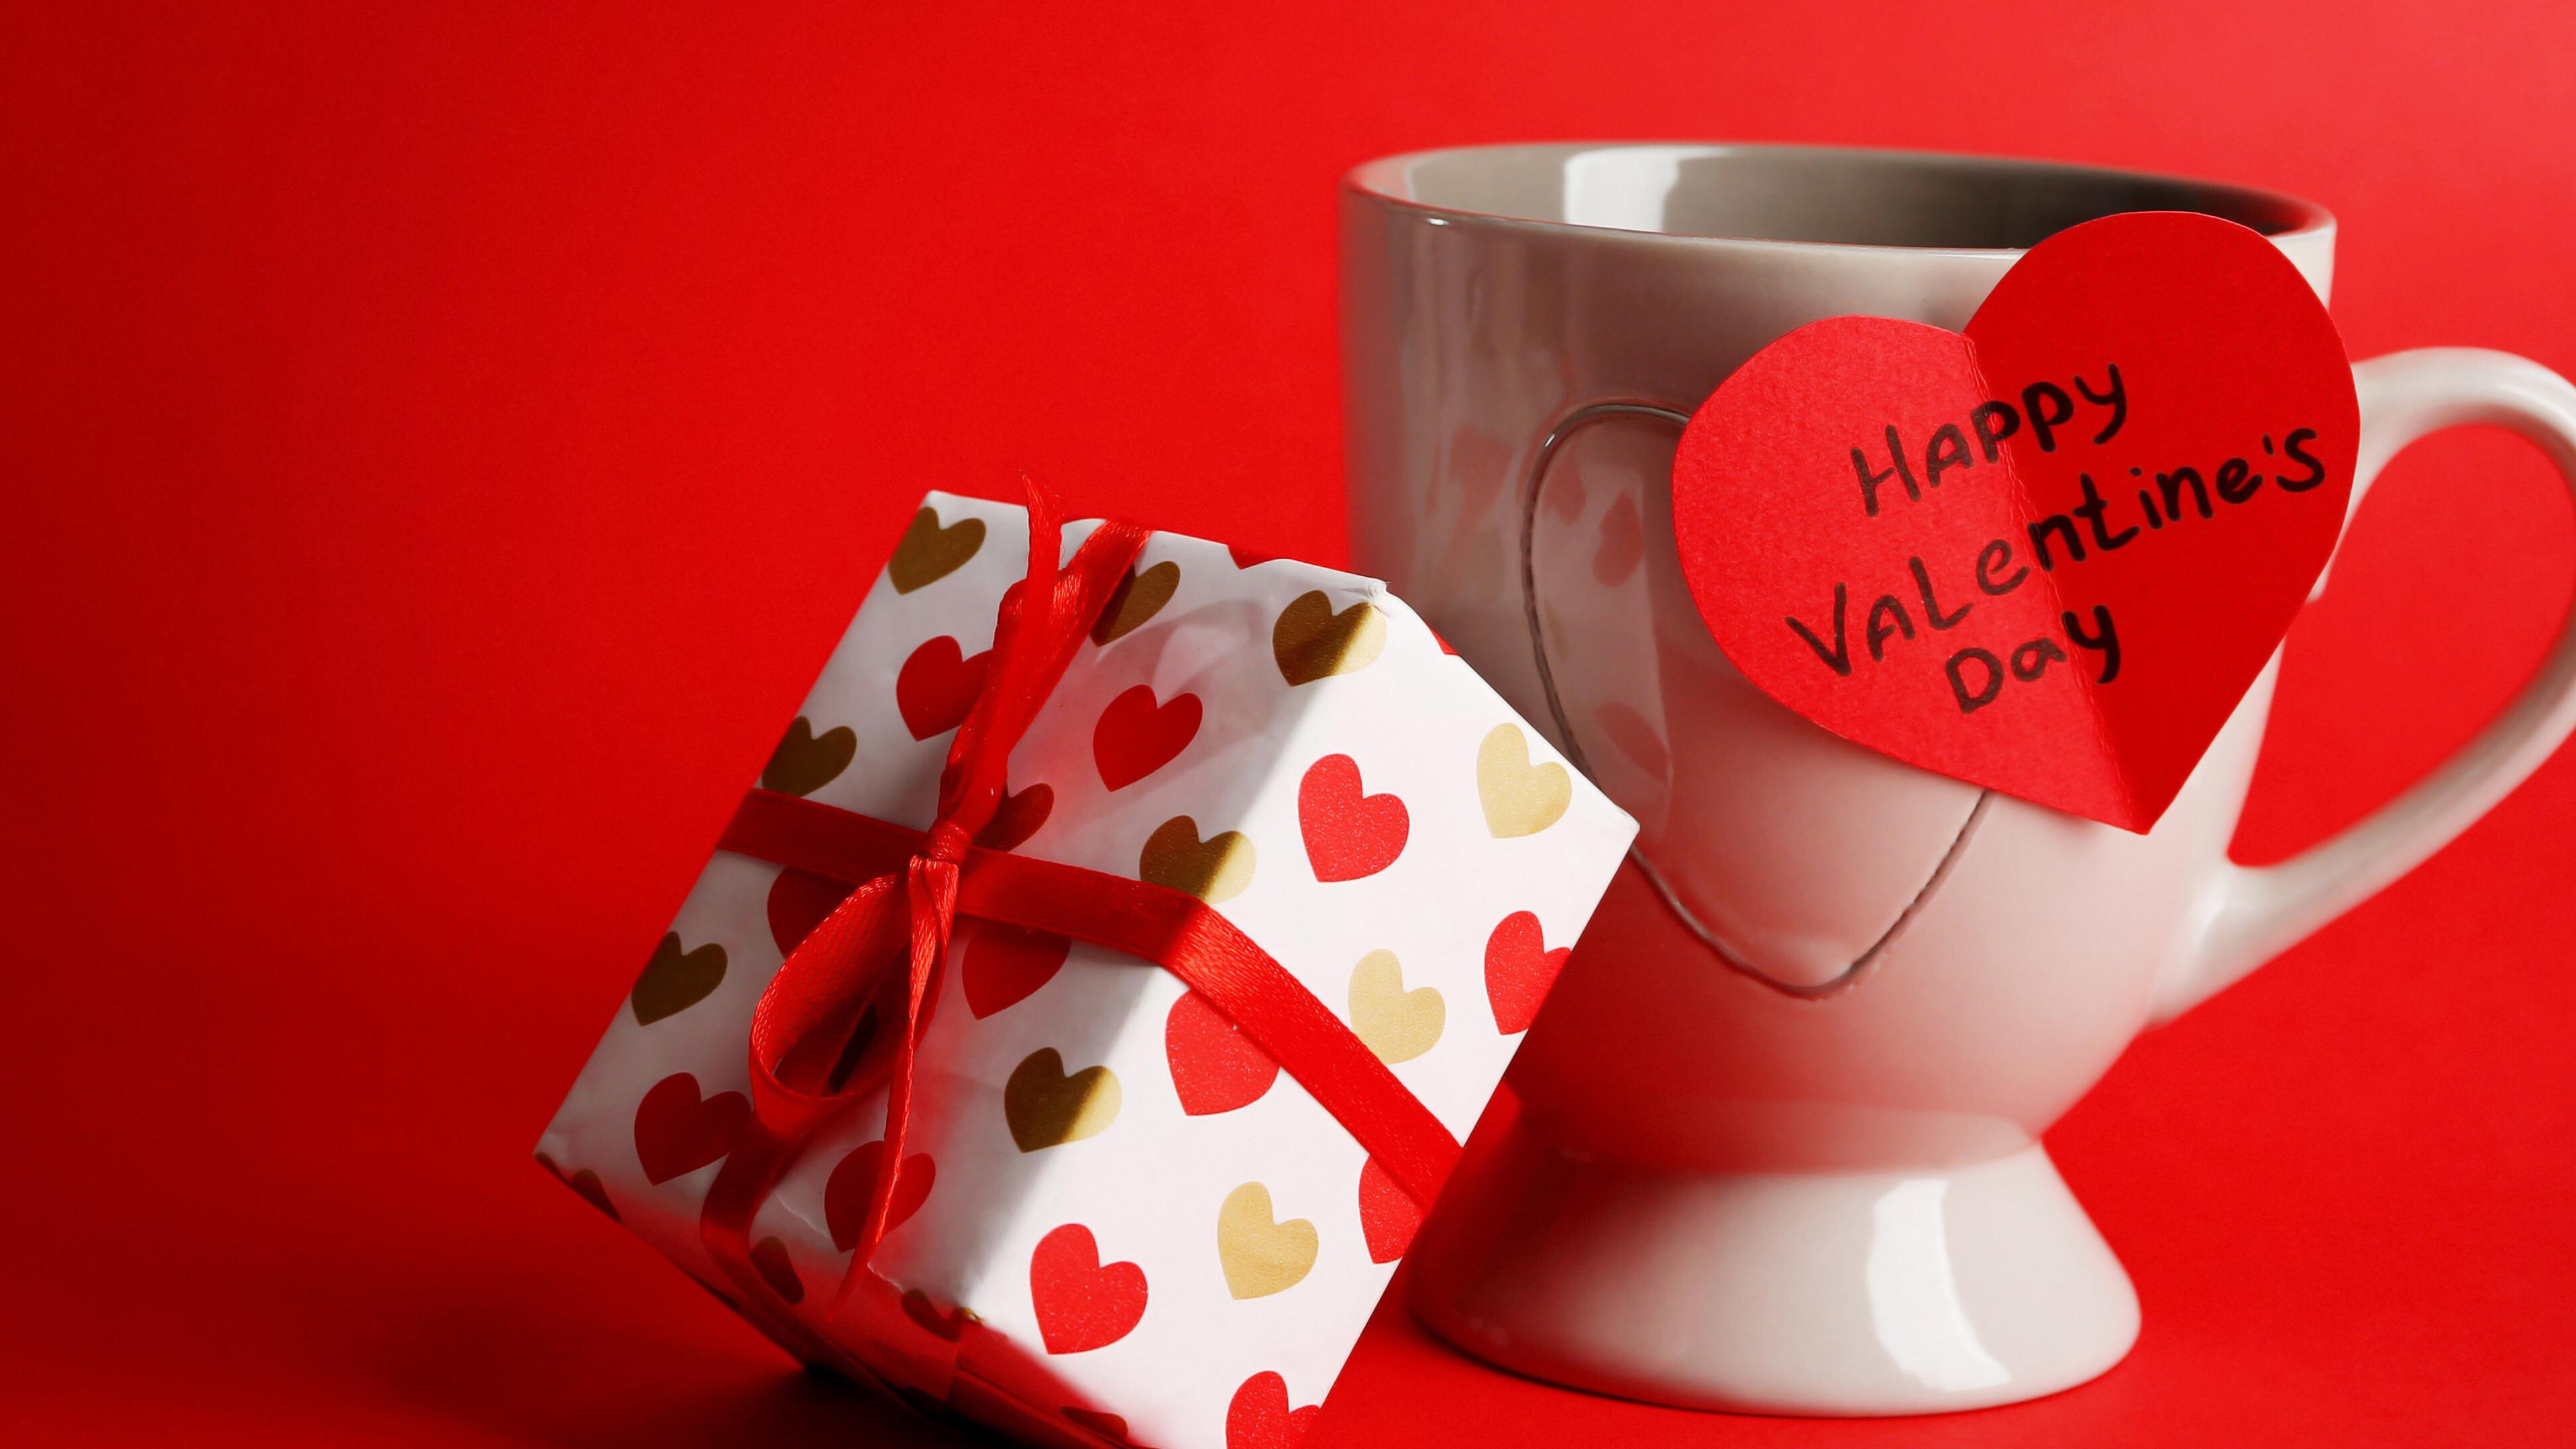 Happy Valentines Day Gift 4k Wallpaper Hd Wallpapers